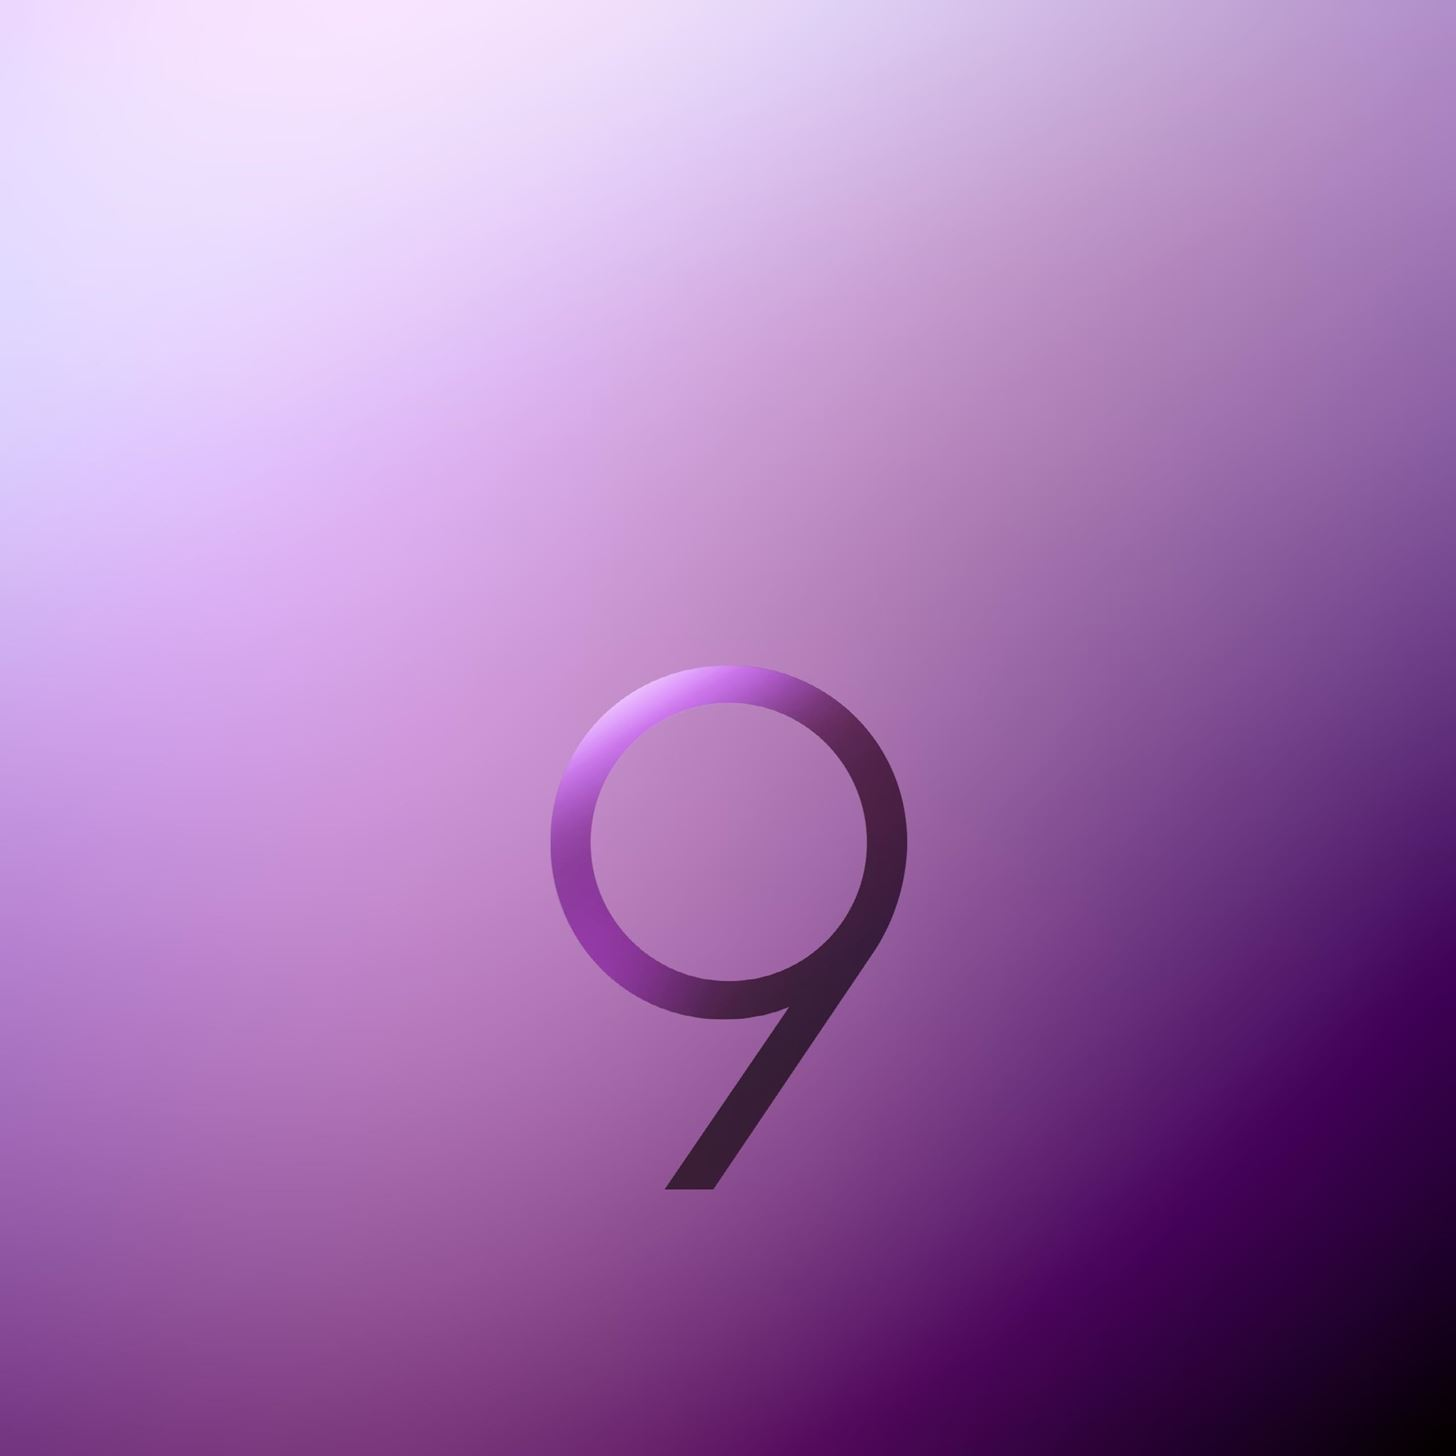 How to Get the Galaxy S9's New Wallpapers on Any Phone